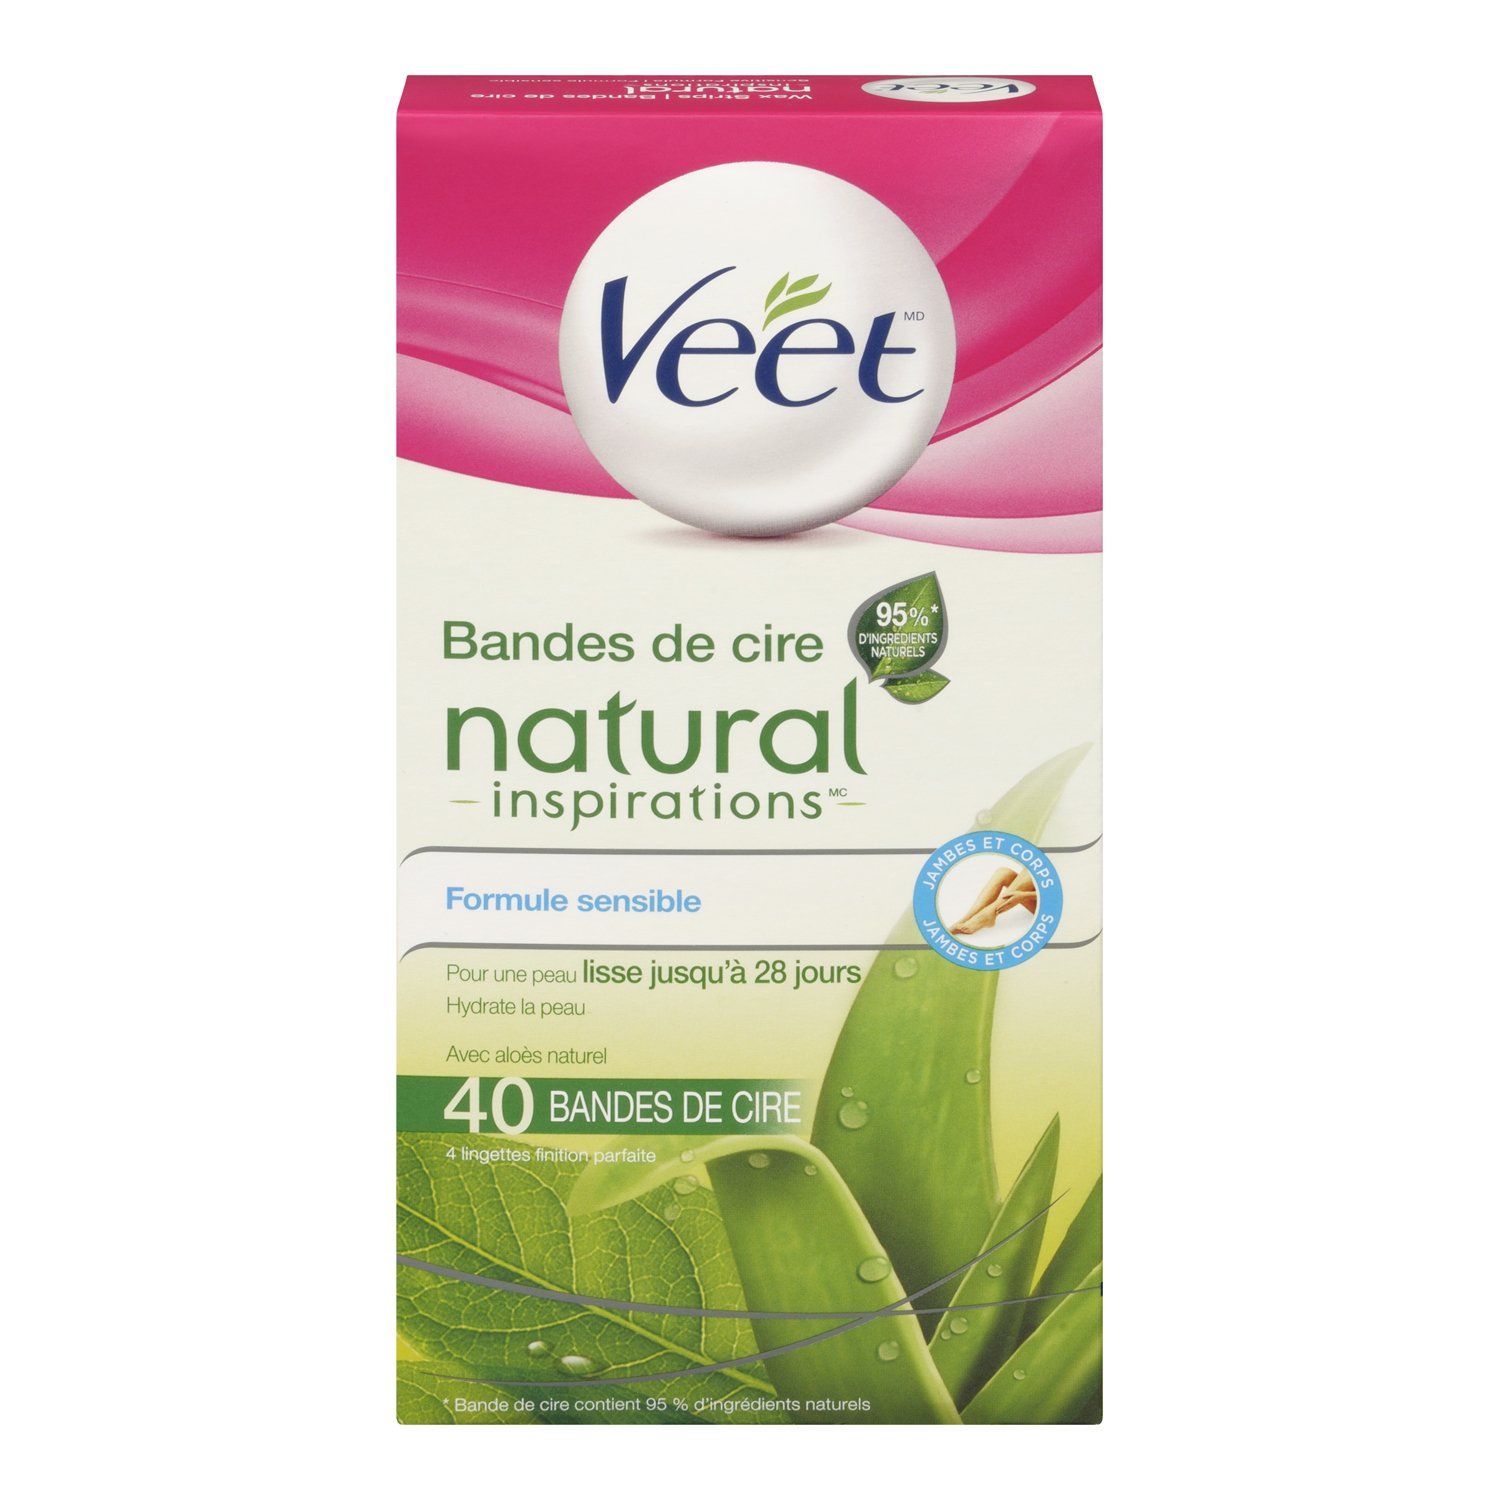 Veet, Wax Strips with Easy Gelwax, Hair Removal, Remove the Shortest Hairs, Dry Skin, Legs & Body, 20 Count